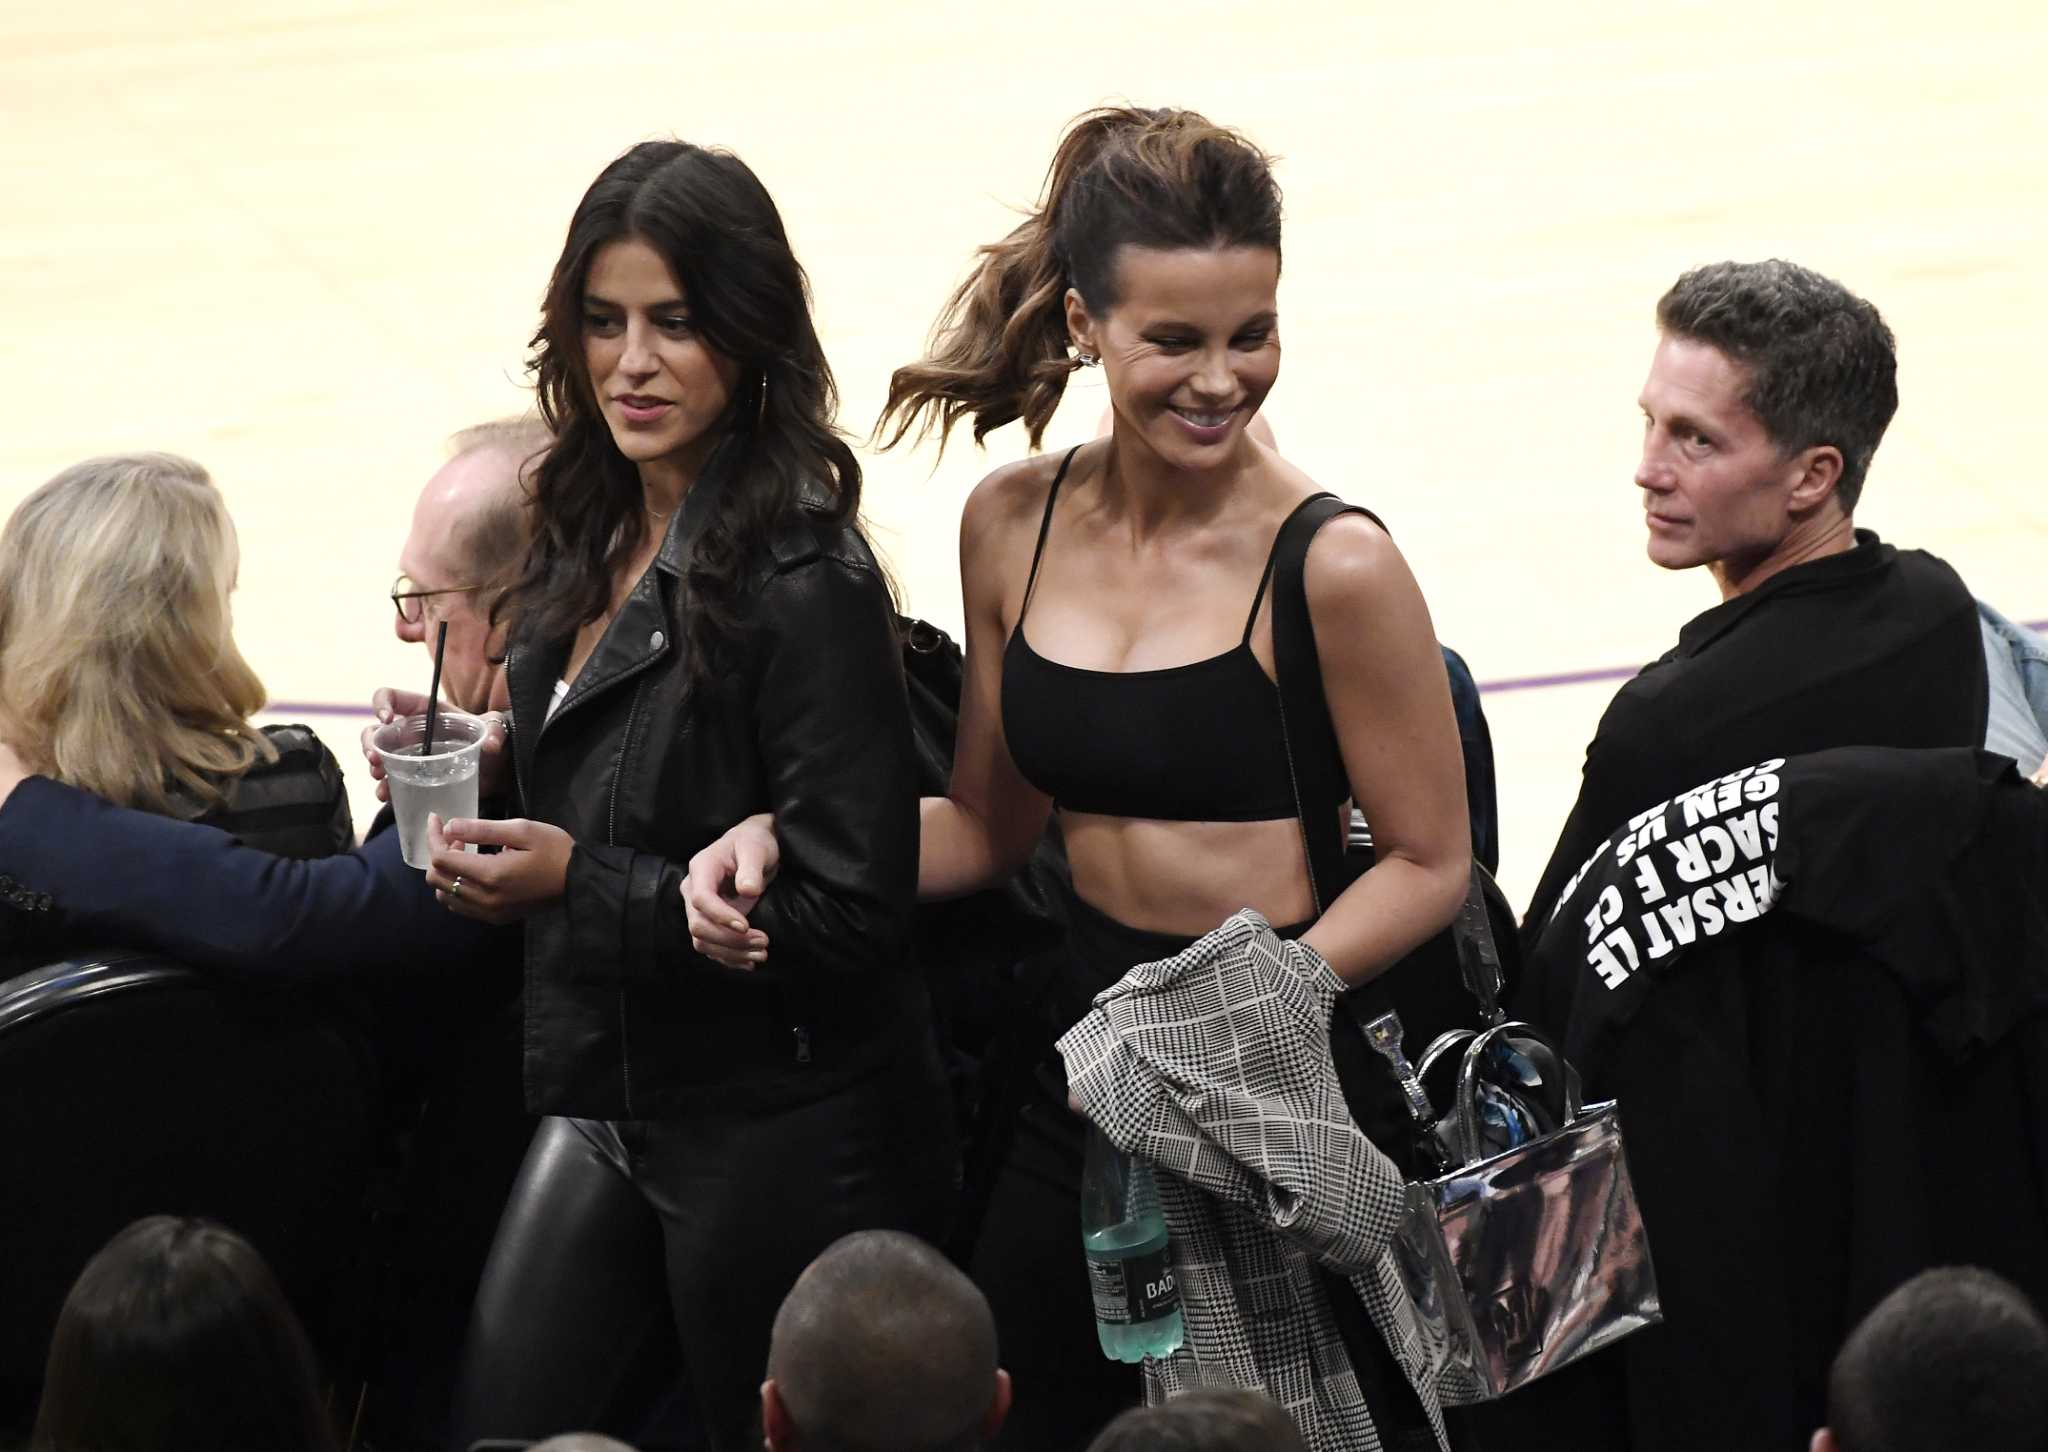 Celebrities fill courtside seats for Rockets-Lakers game ...Lakers Game